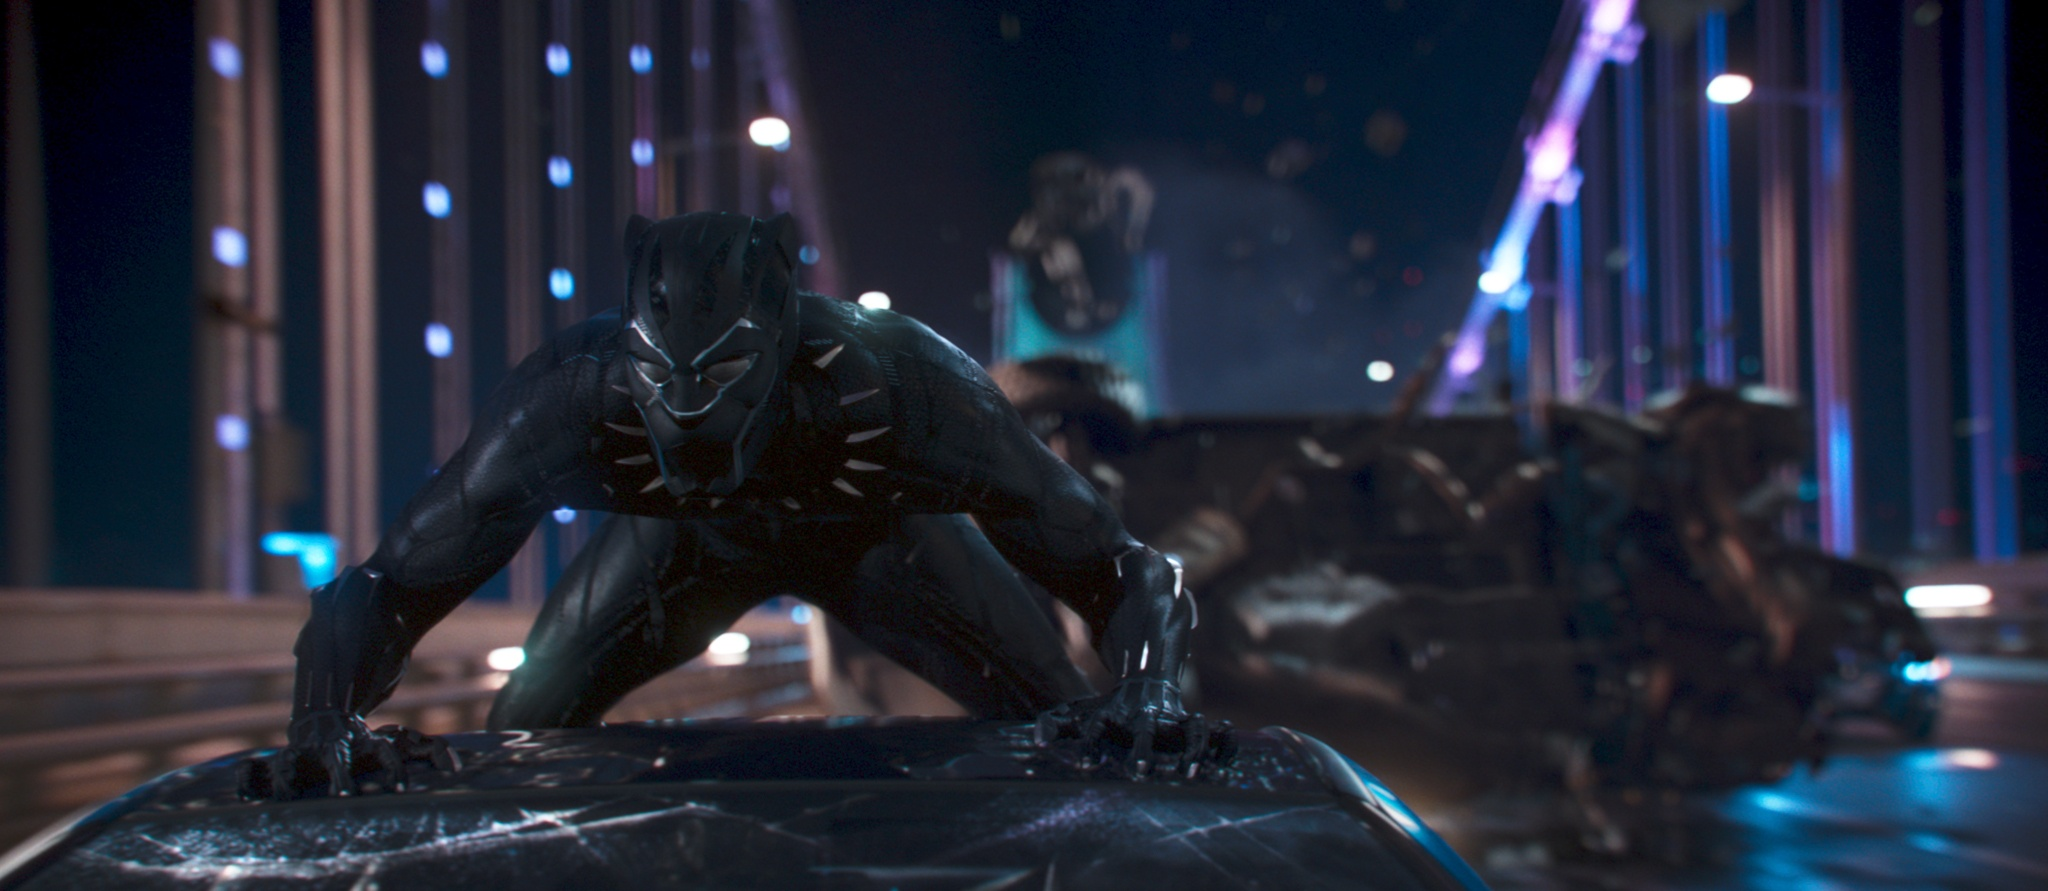 Can my child see BLACK PANTHER?